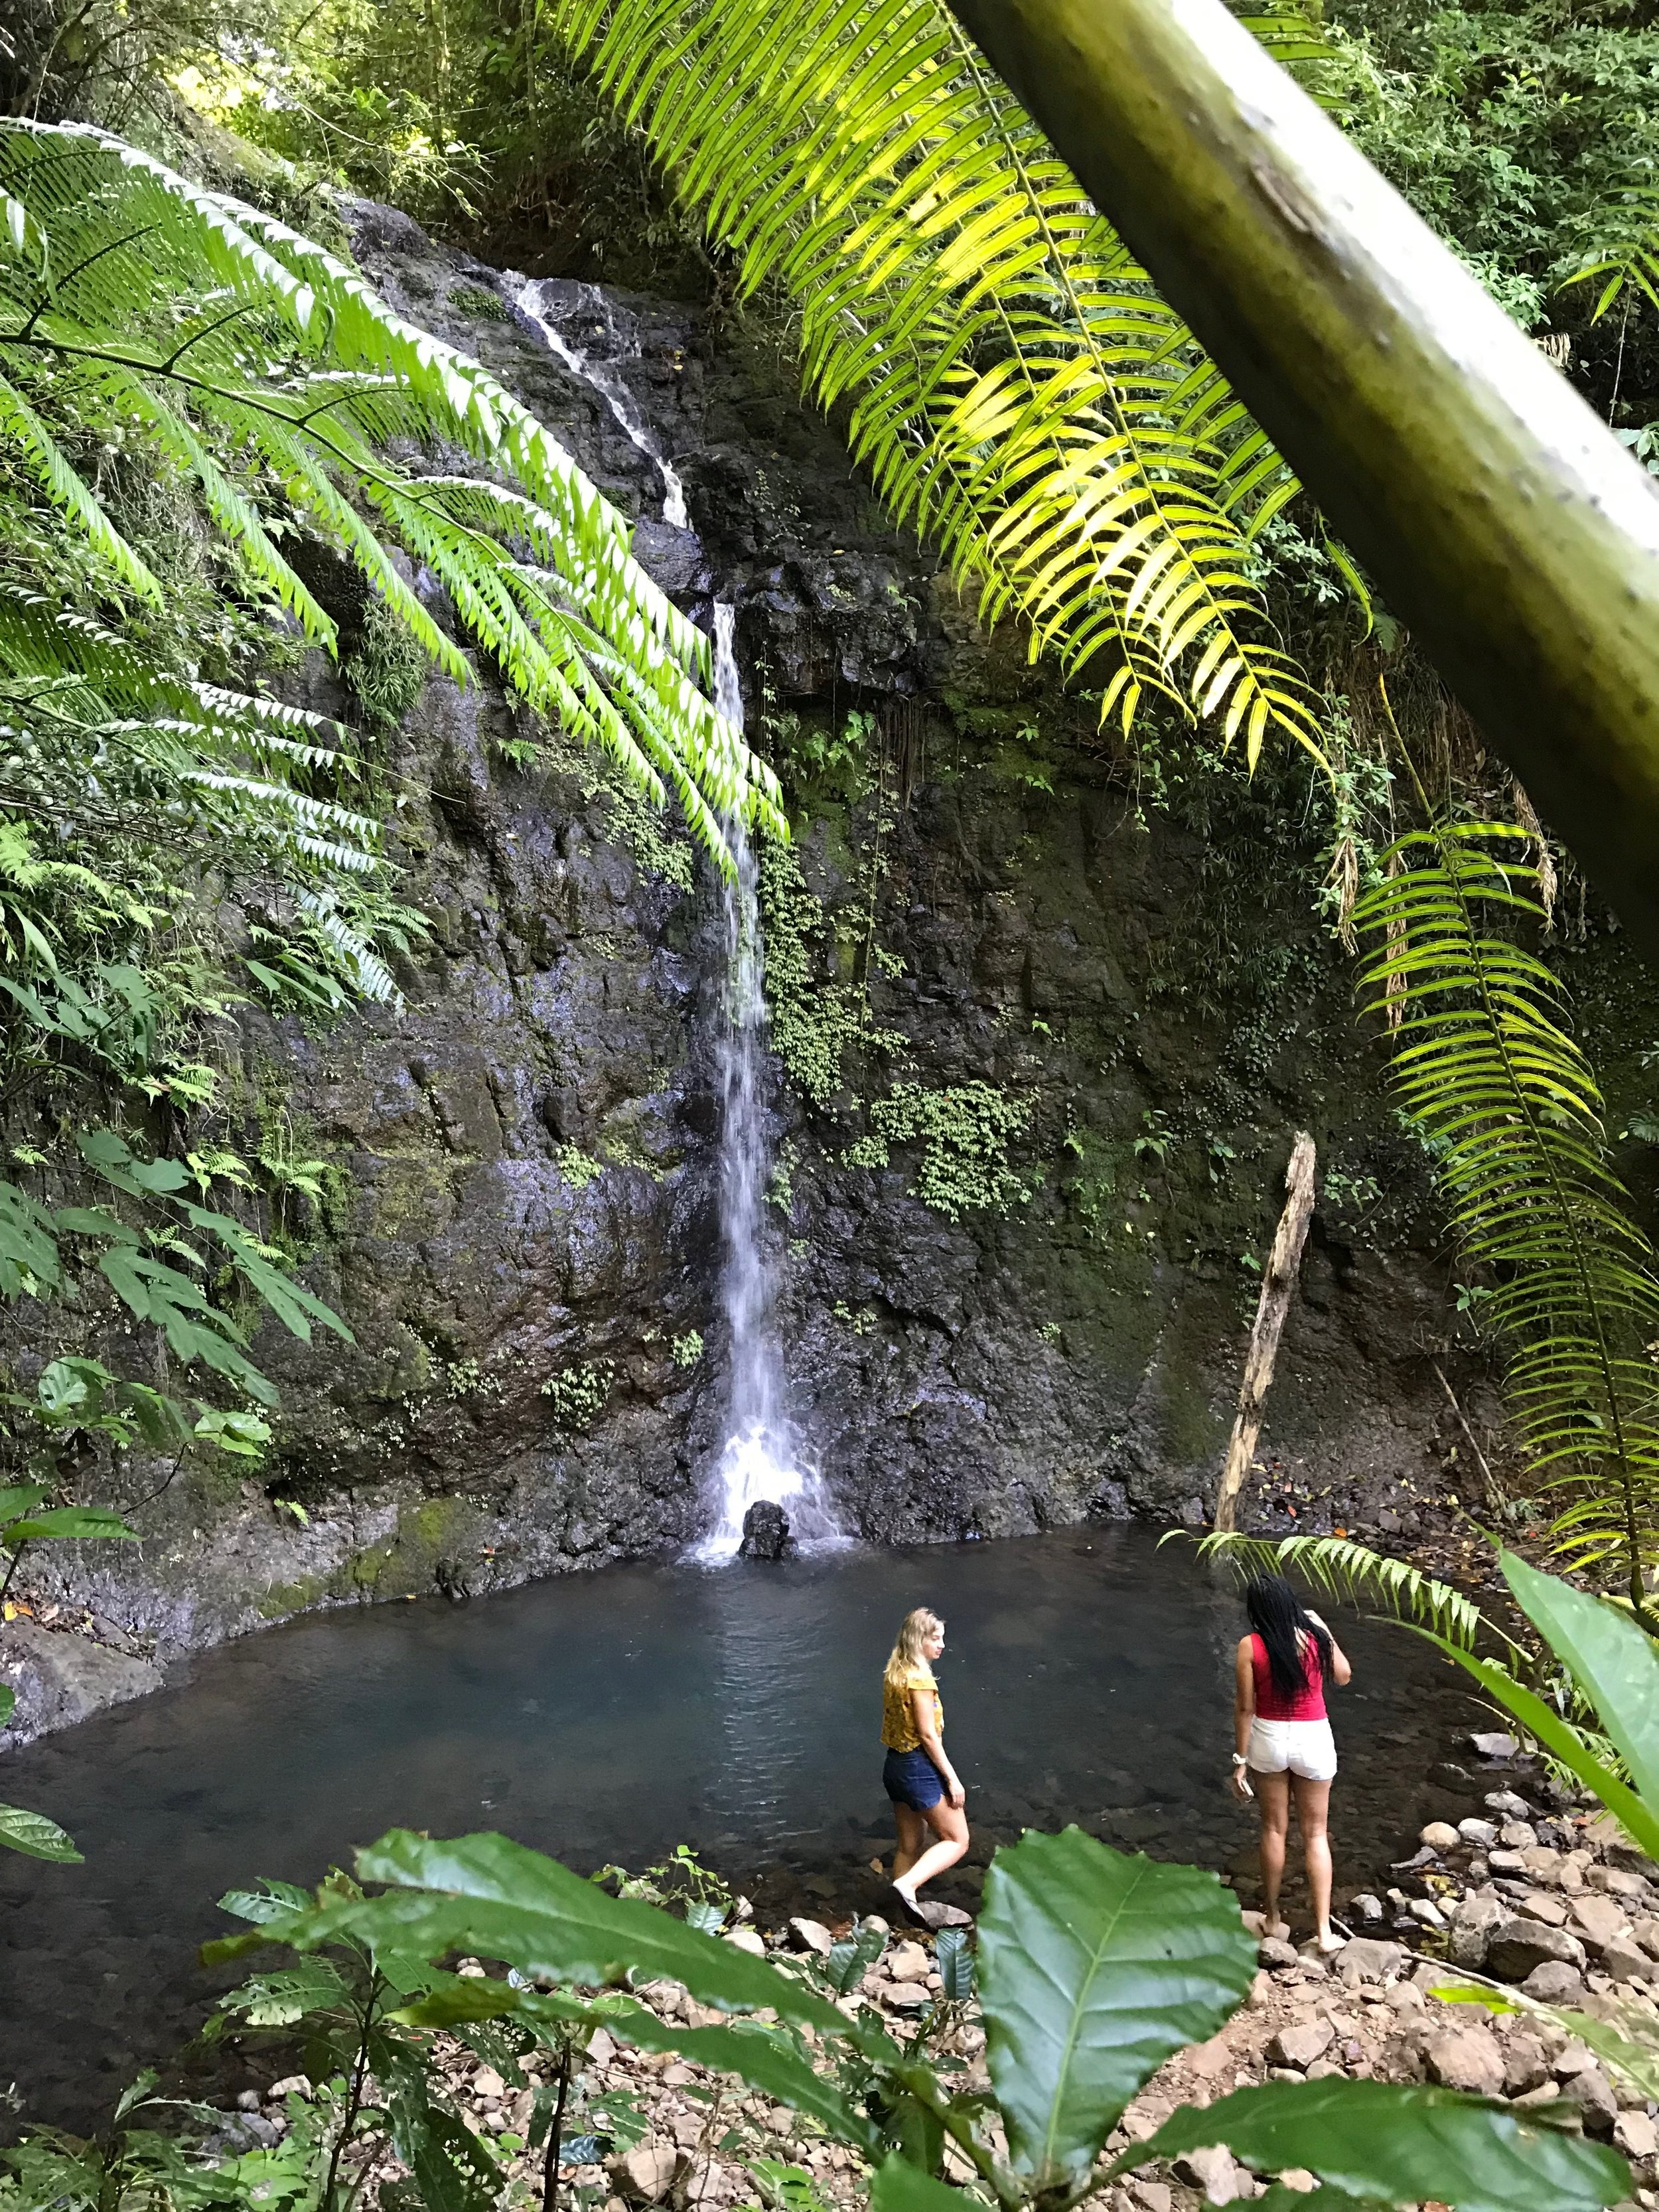 Silver Crook Falls en Route to the Nandroya Falls